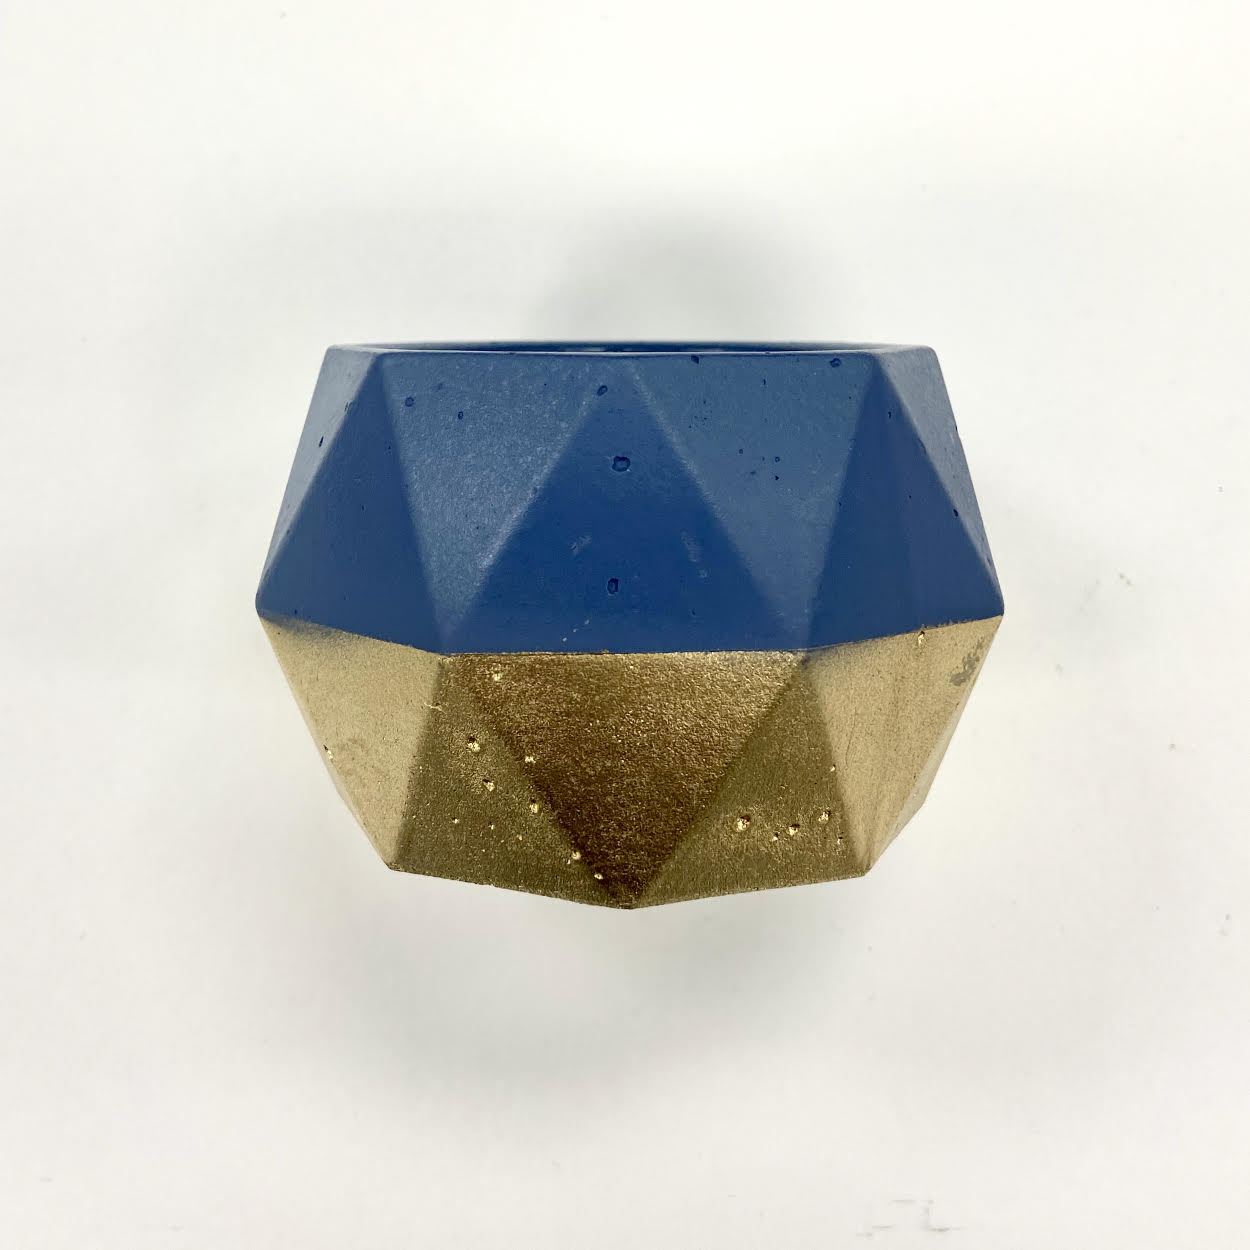 Image of a Dark Blue and Gold Geometric Candle Holder